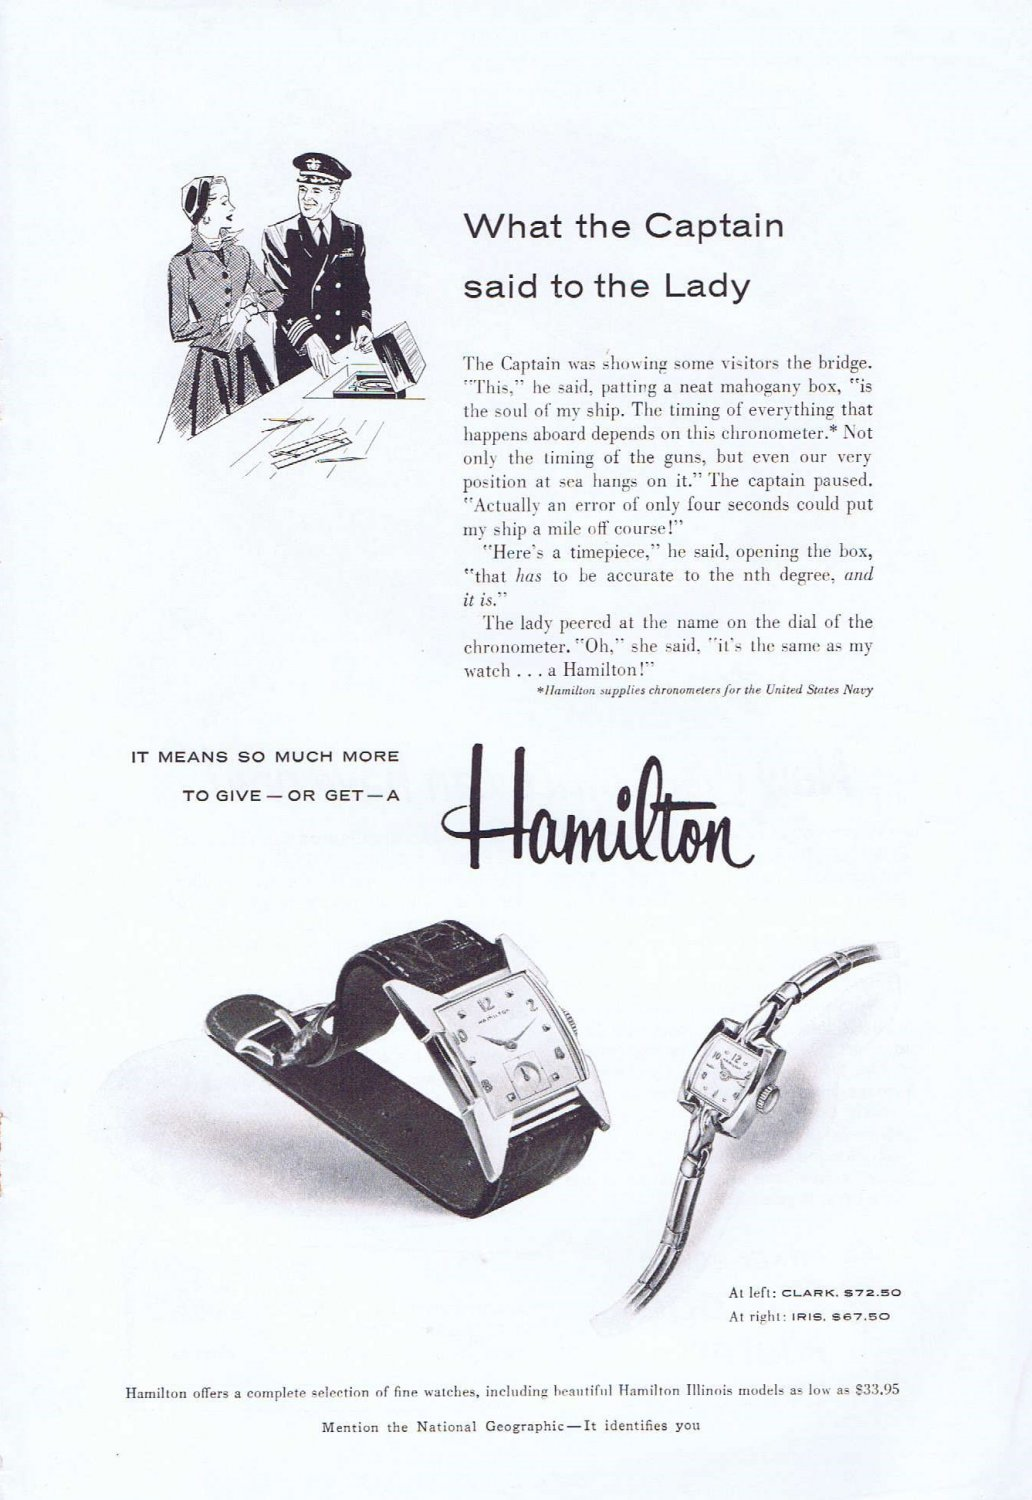 1955 Hamilton Watch Original Vintage Ad with the Captain and the Lady